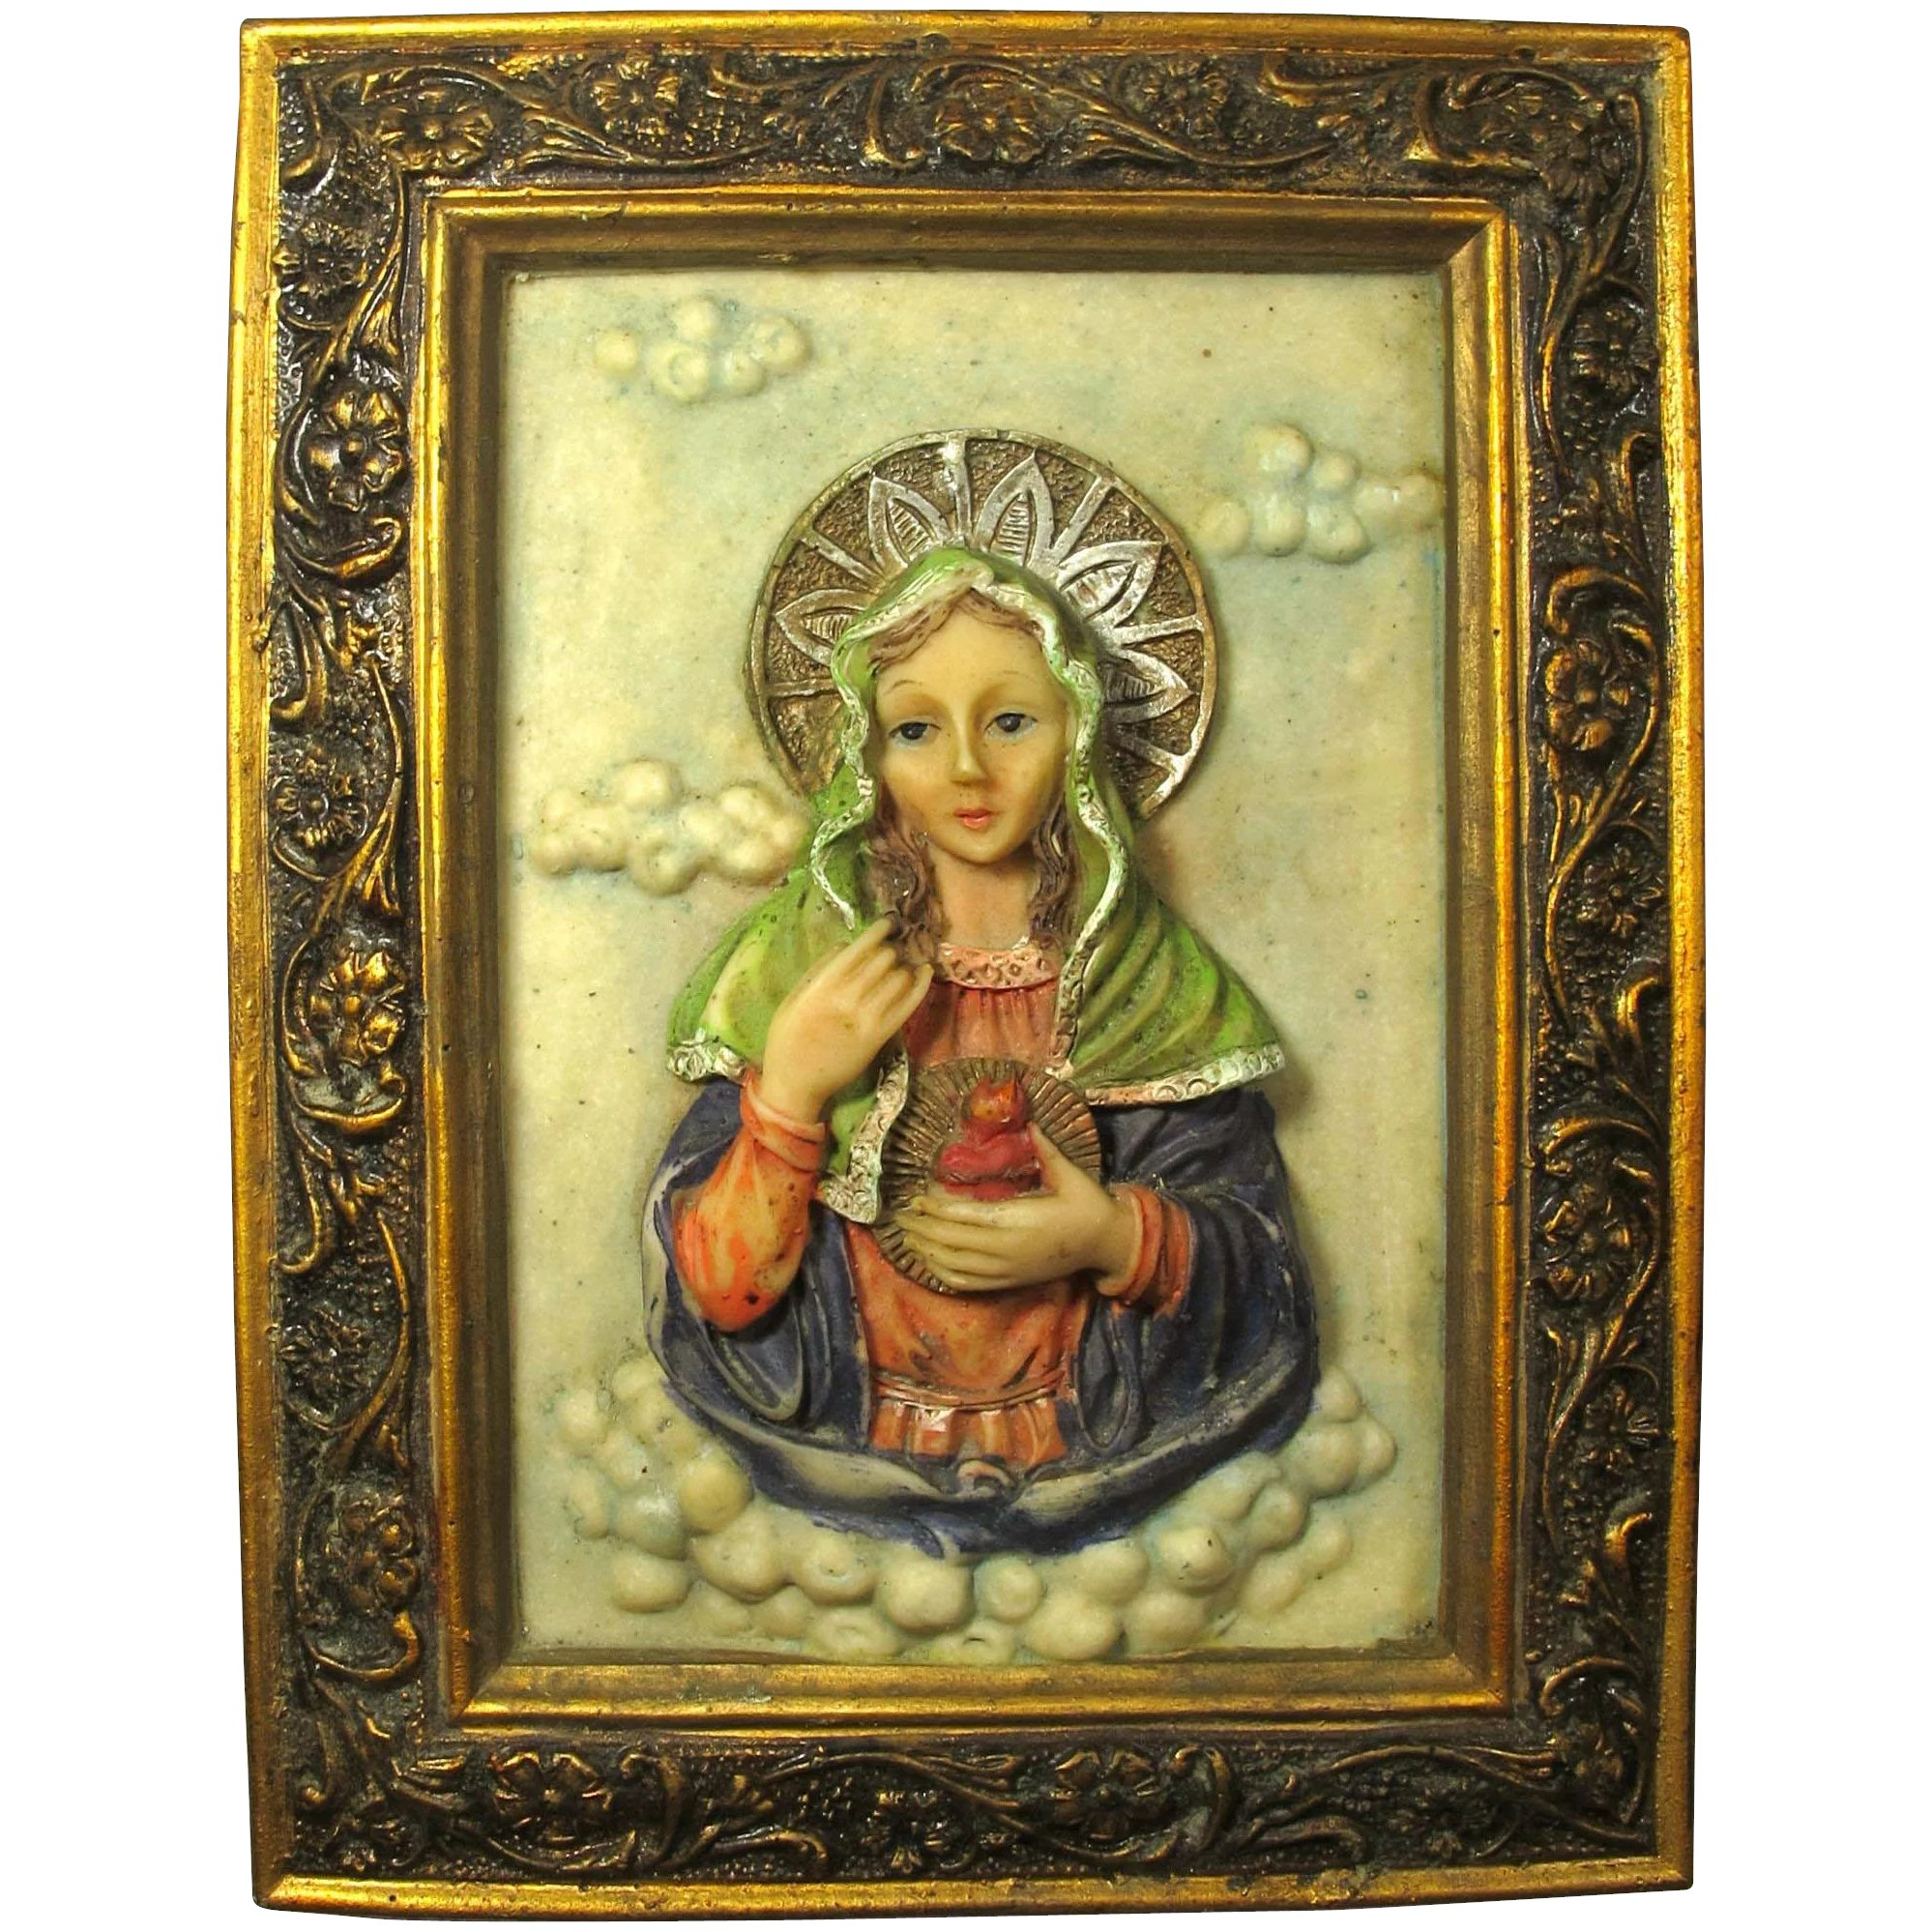 Fantastic Virgin Mary Wall Art Crest - Wall Art Collections .  sc 1 st  Fastingforourfuture.org & Amazing Virgin Mary Wall Art Festooning - Wall Art Collections ...